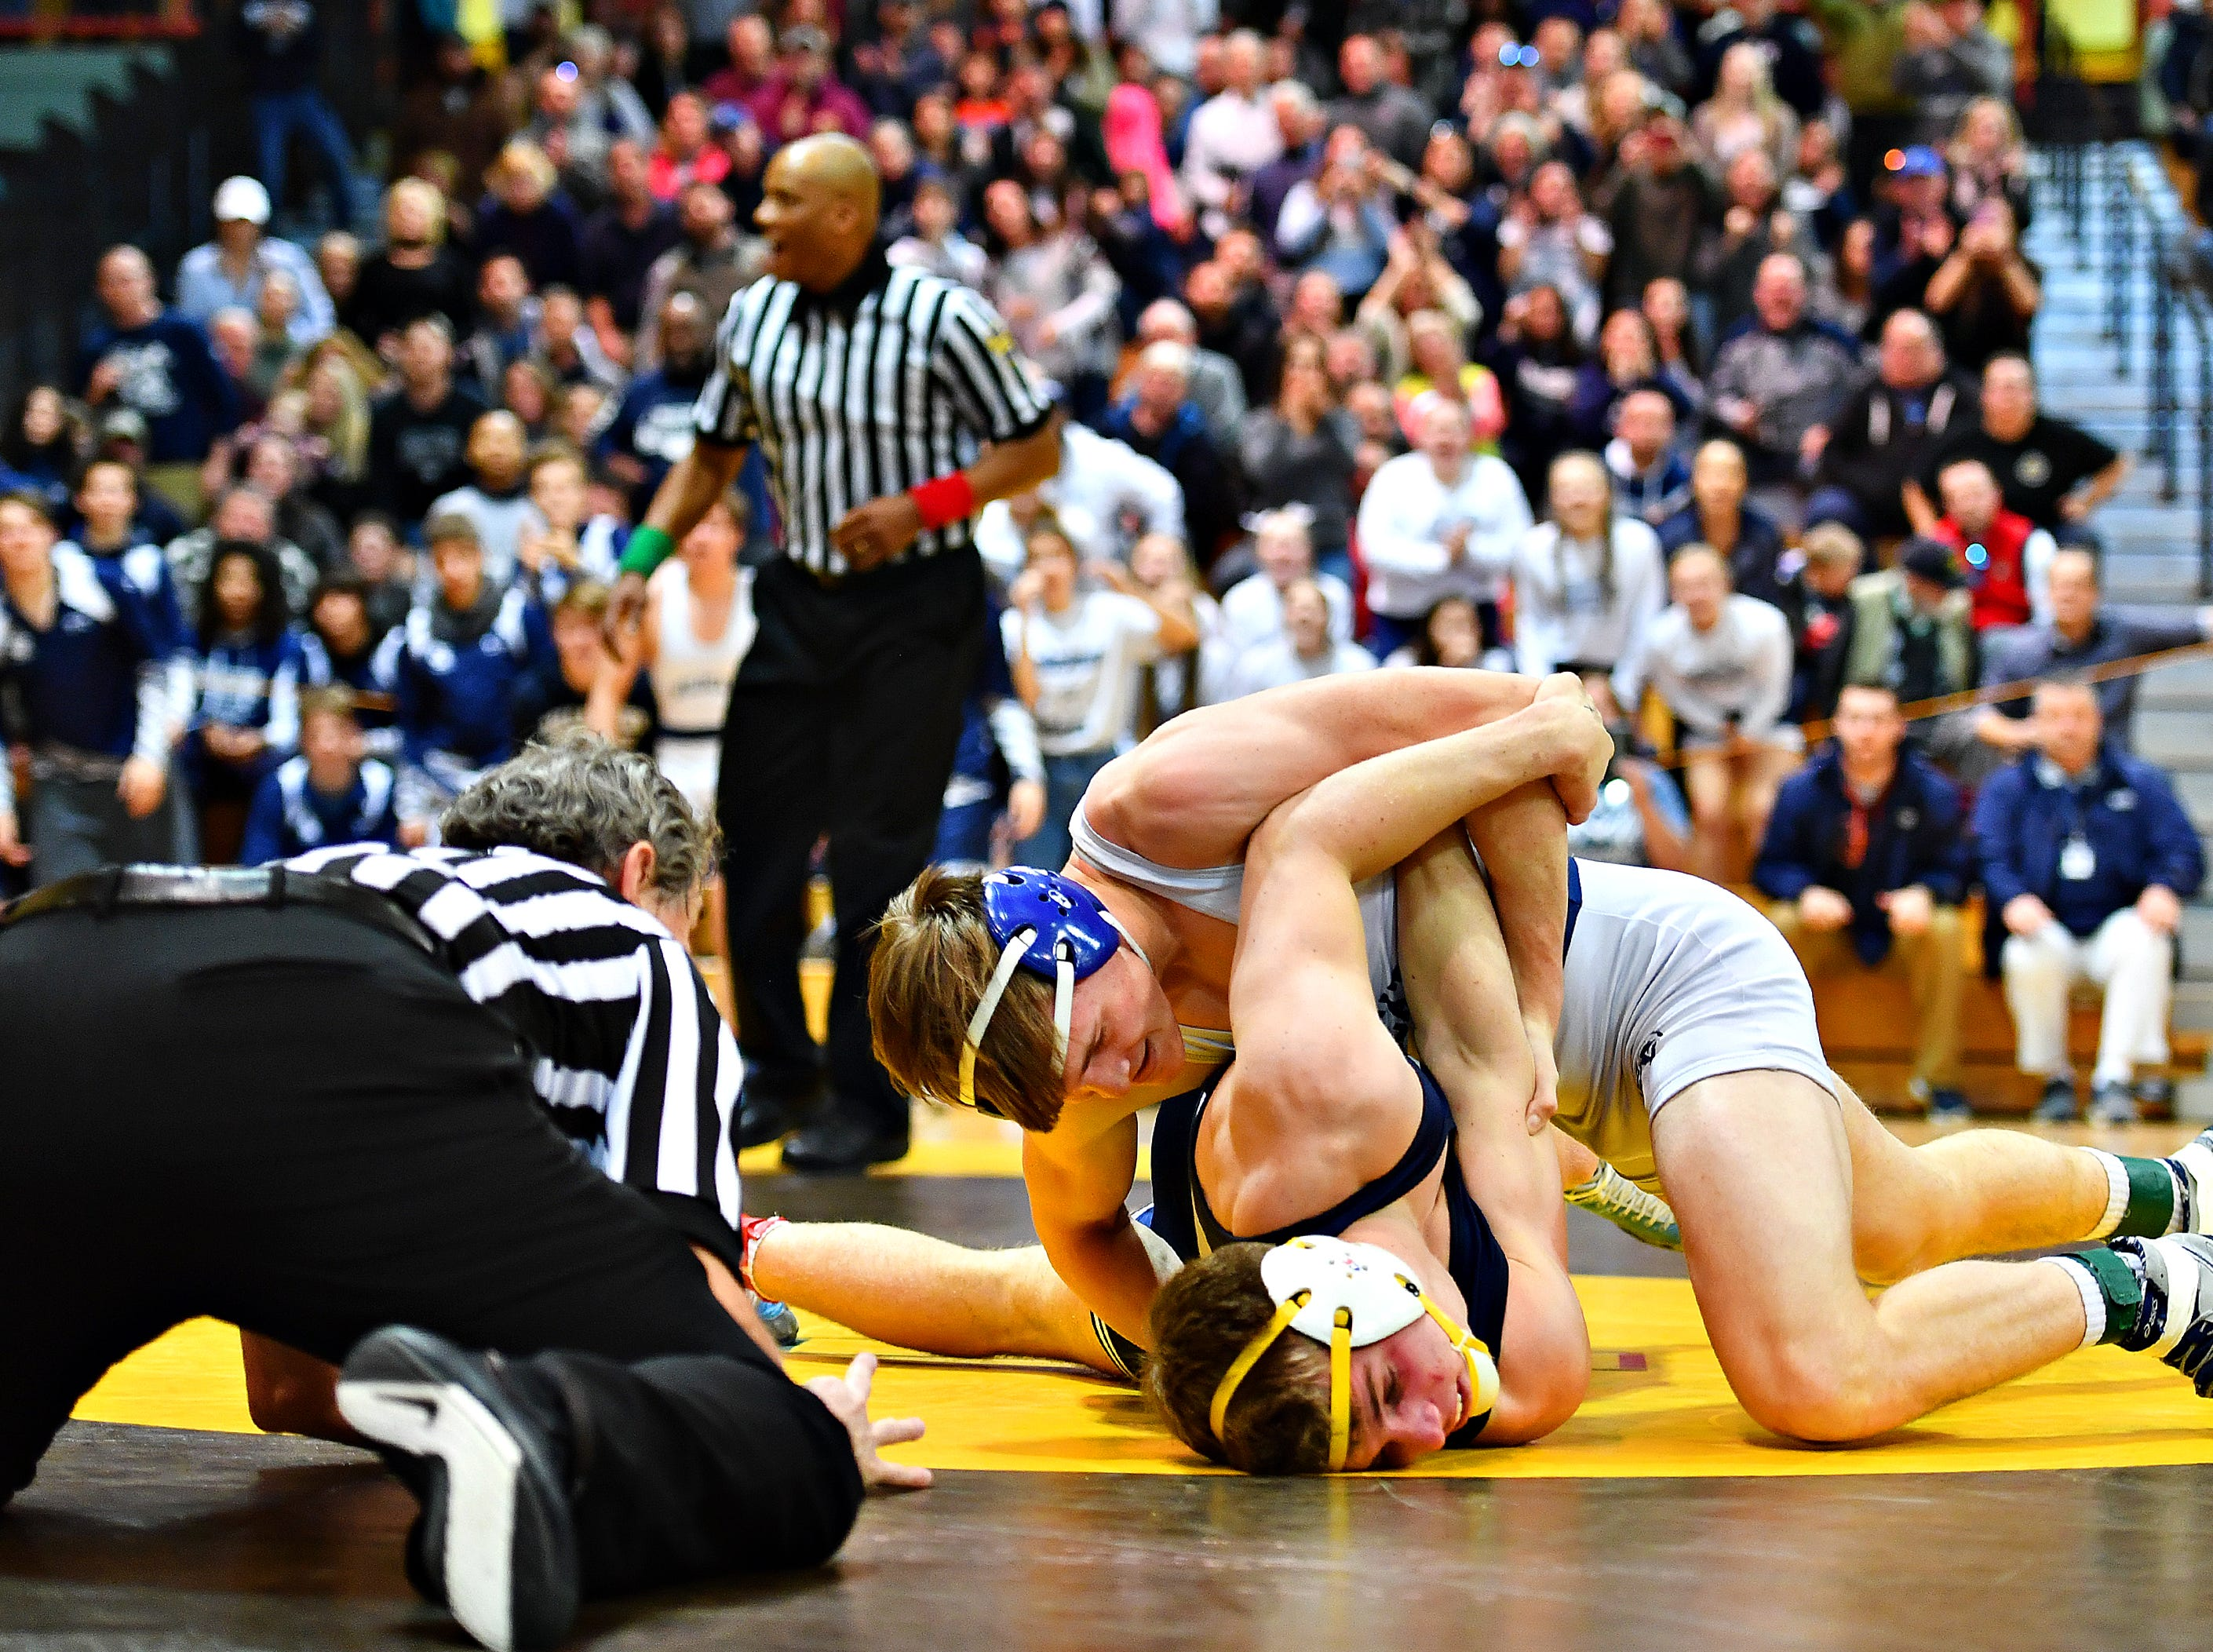 Dallastown's John Ligon, top right, wrestles Cedar Cliff's Bobby Whalen in the 160 pound weight class during District 3, Class 3A wrestling championship action at Milton Hershey High School in Hershey, Saturday, Feb. 2, 2019. Dawn J. Sagert photo